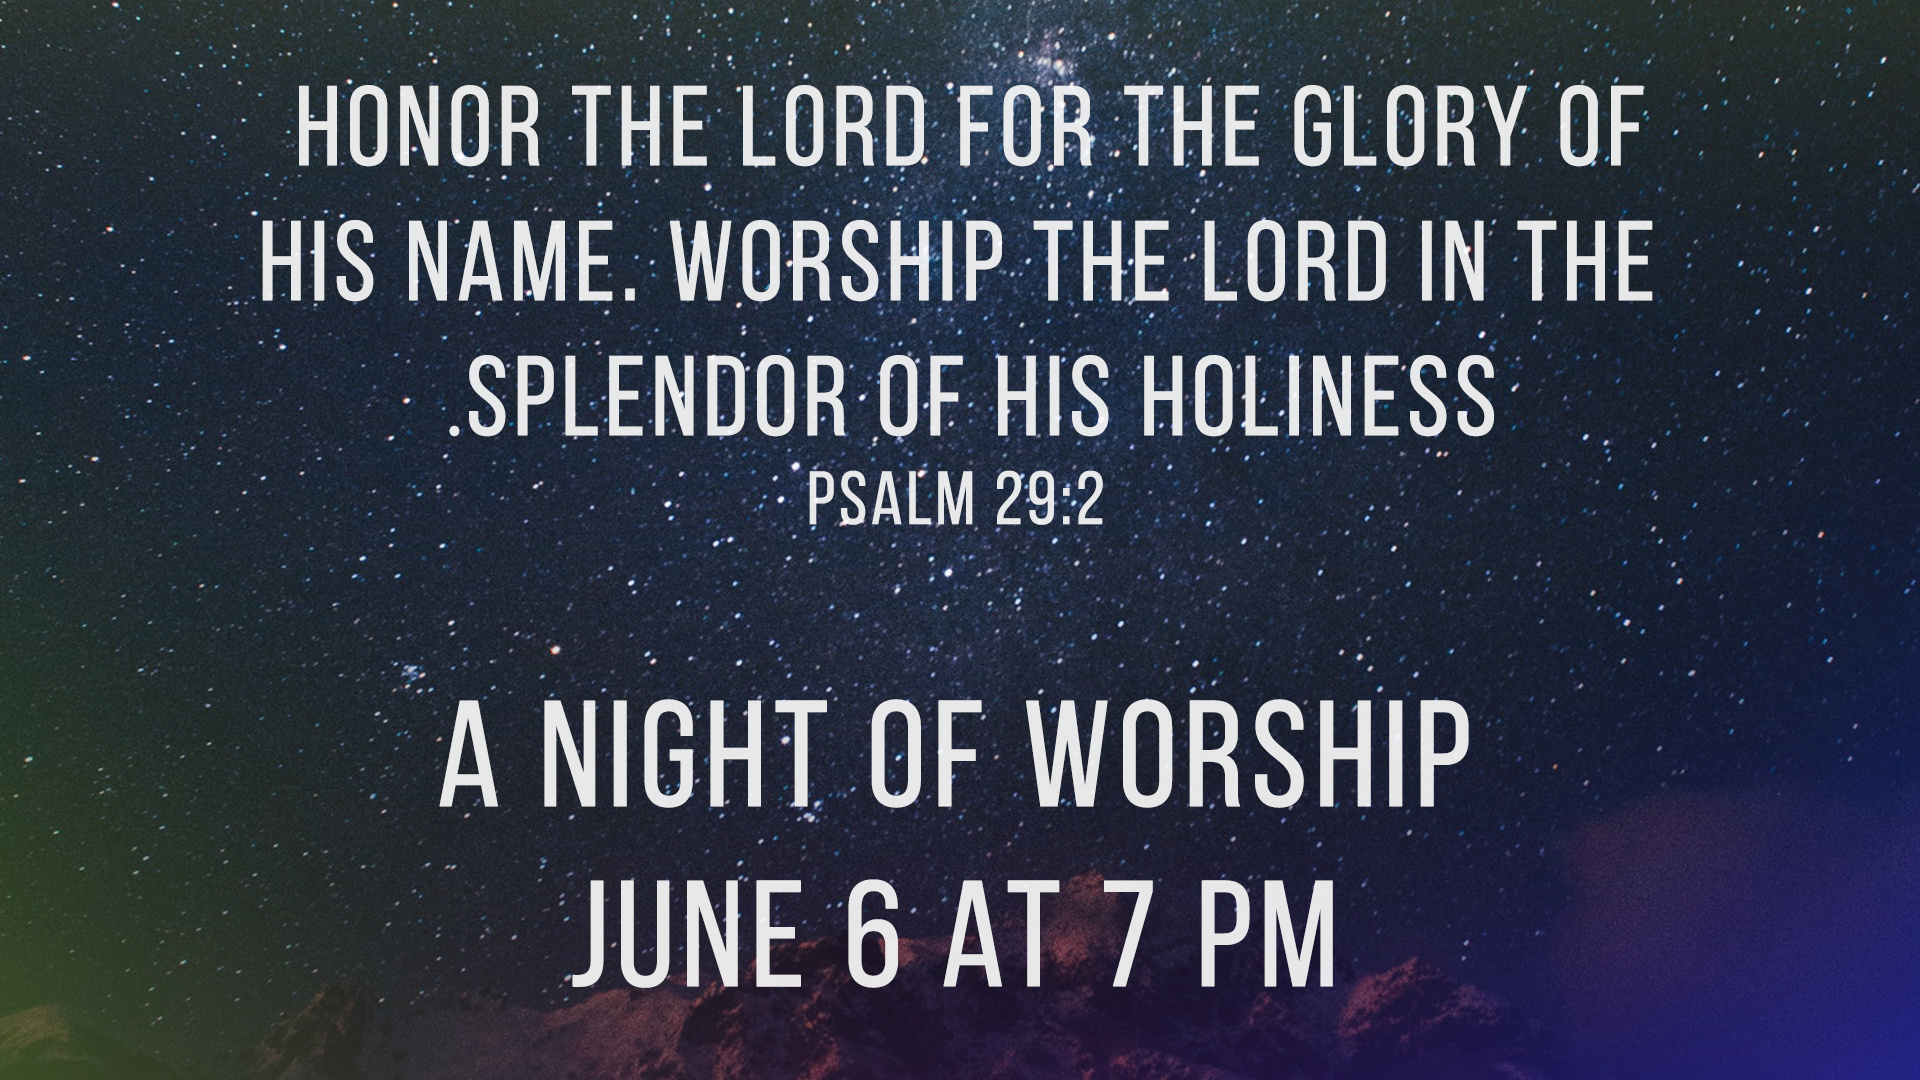 """We invite you to join us for our next """"Night of Worship"""" June 6 at 7 PM."""